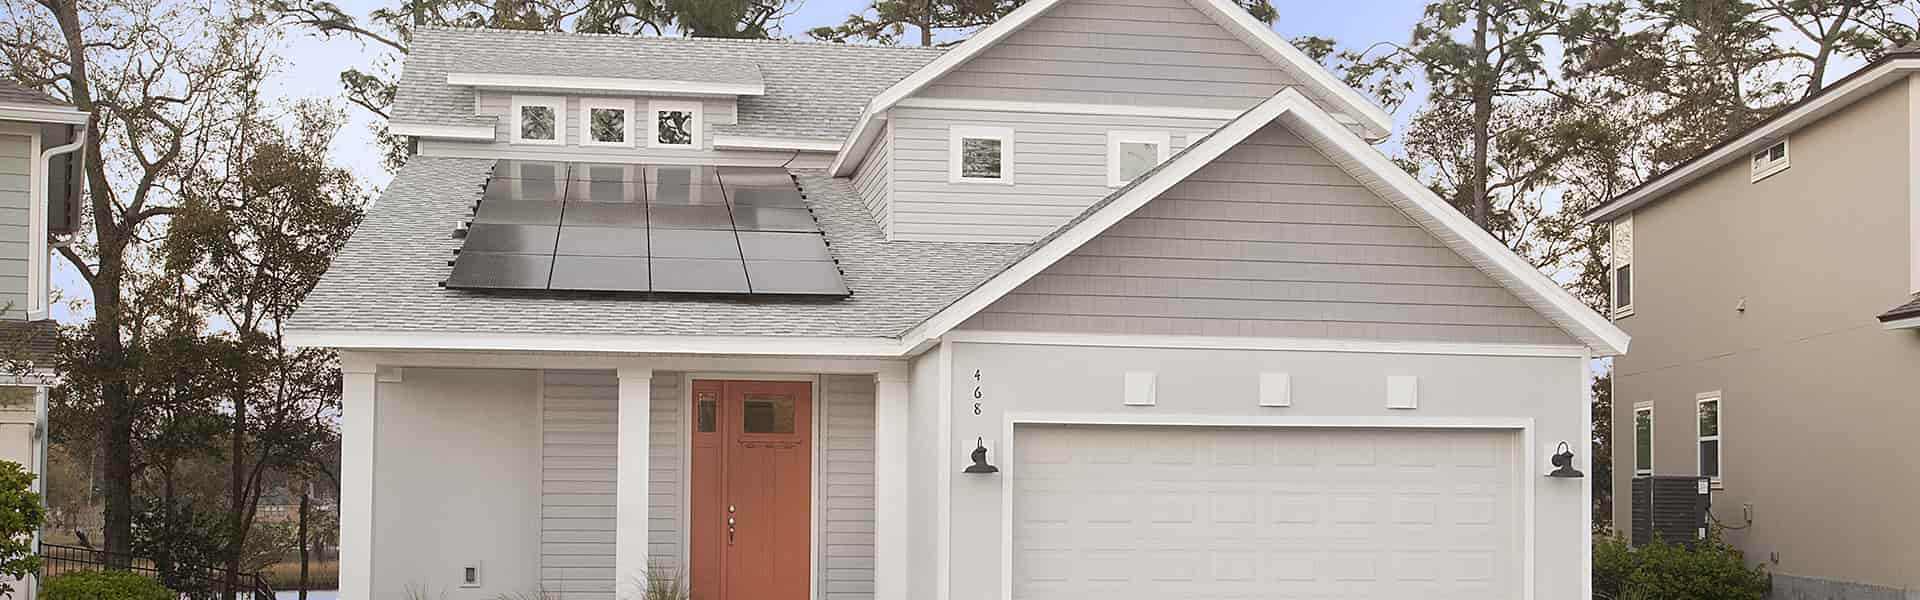 TerraWise builds Solar Powered Energy Efficient Homes.